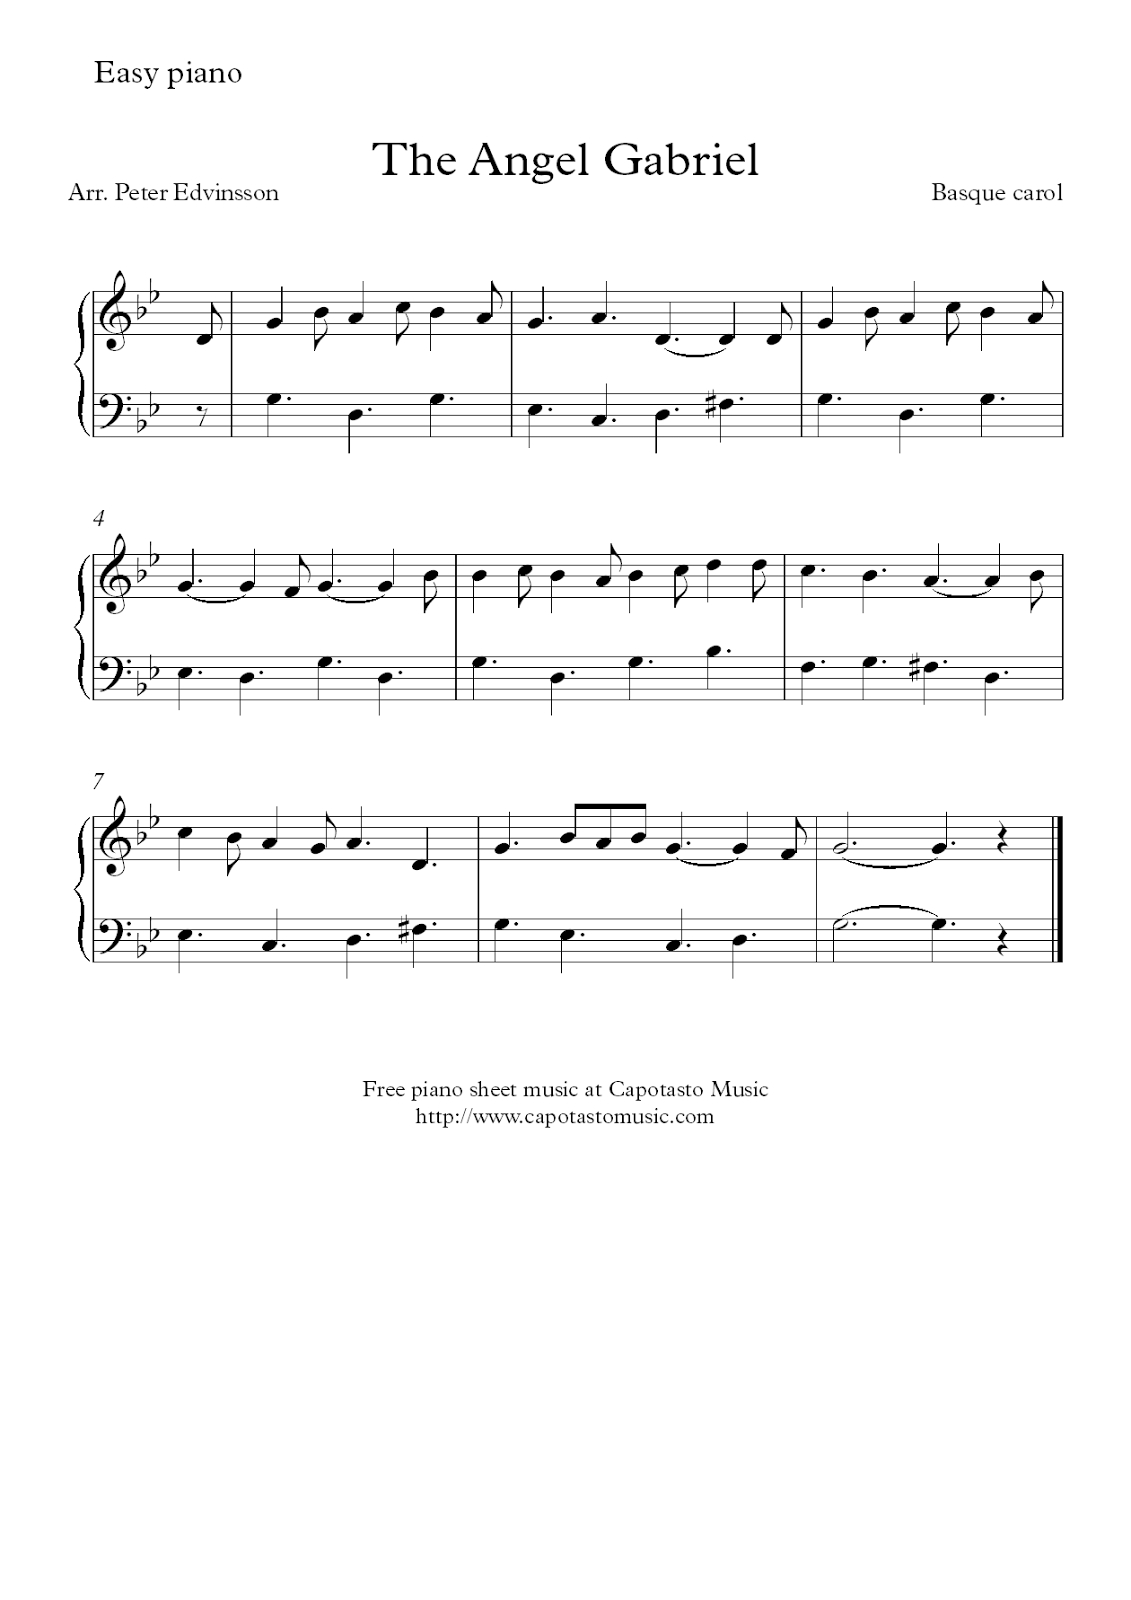 Free Christmas Piano Sheet Music Score, The Angel Gabriel - Free Printable Sheet Music For Piano Beginners Popular Songs